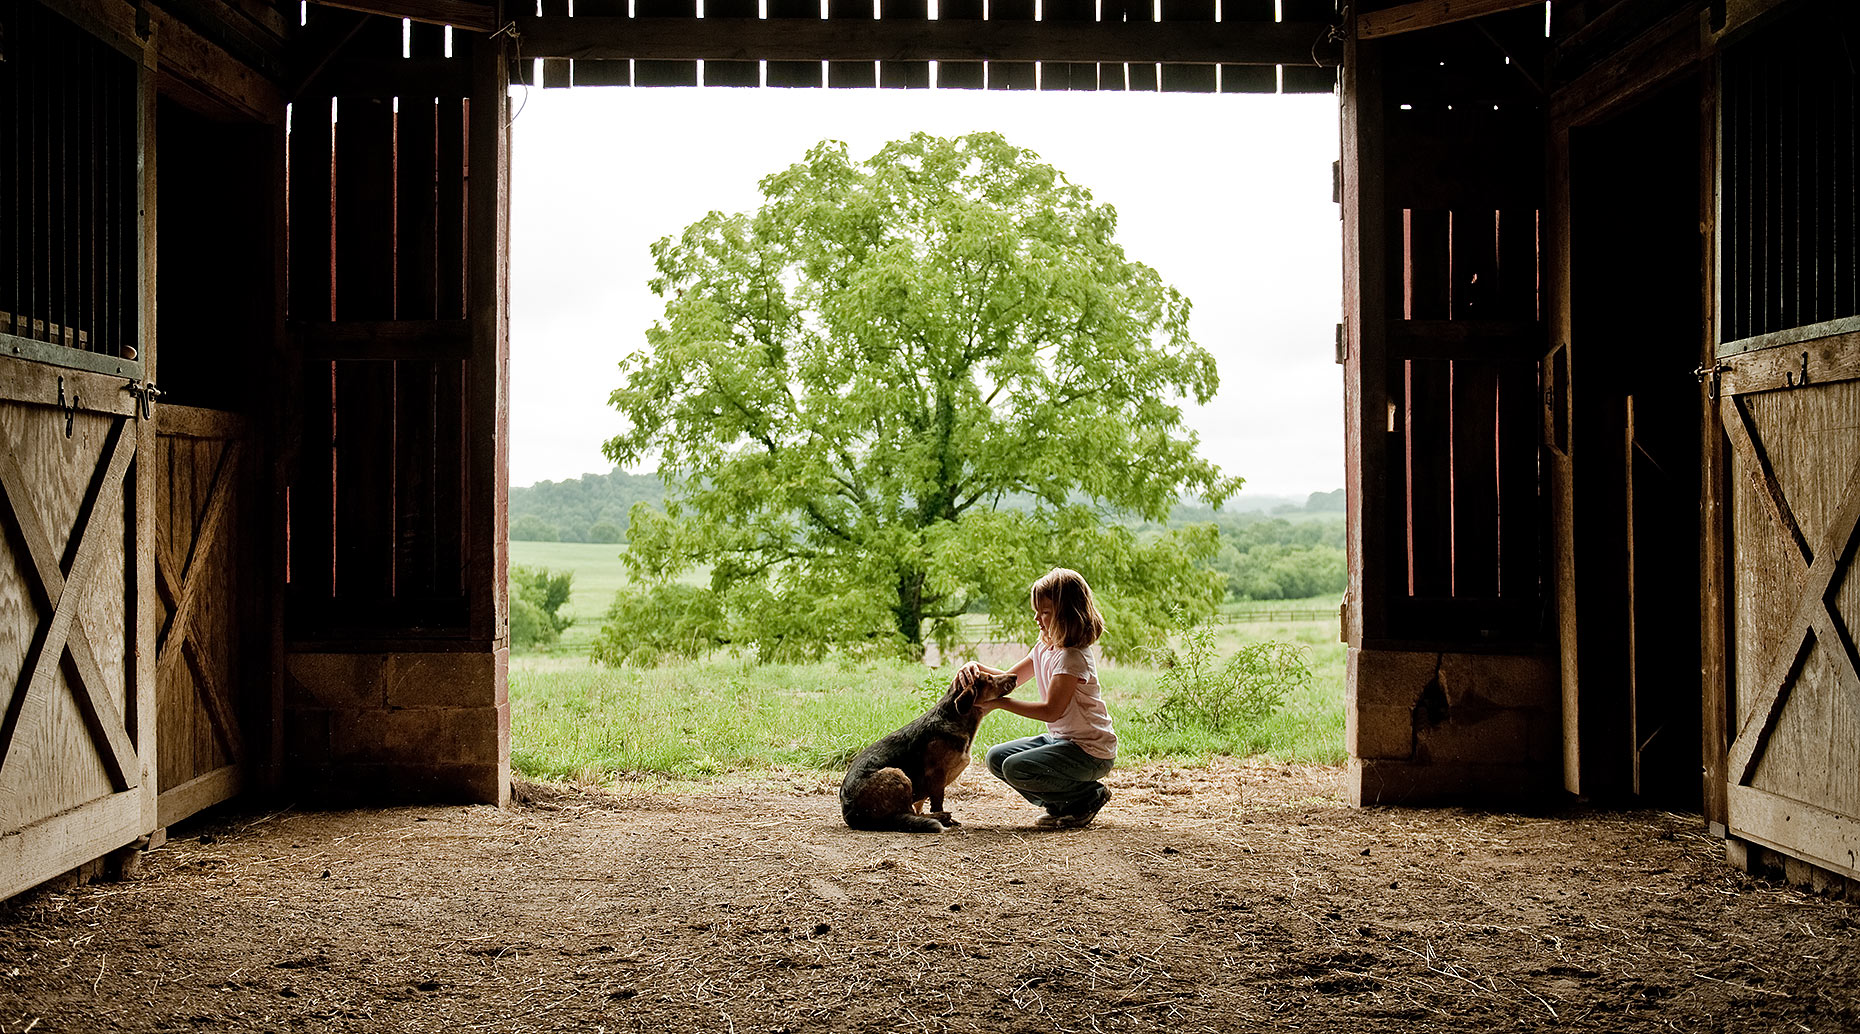 Girl and Dog in Barn on Farm